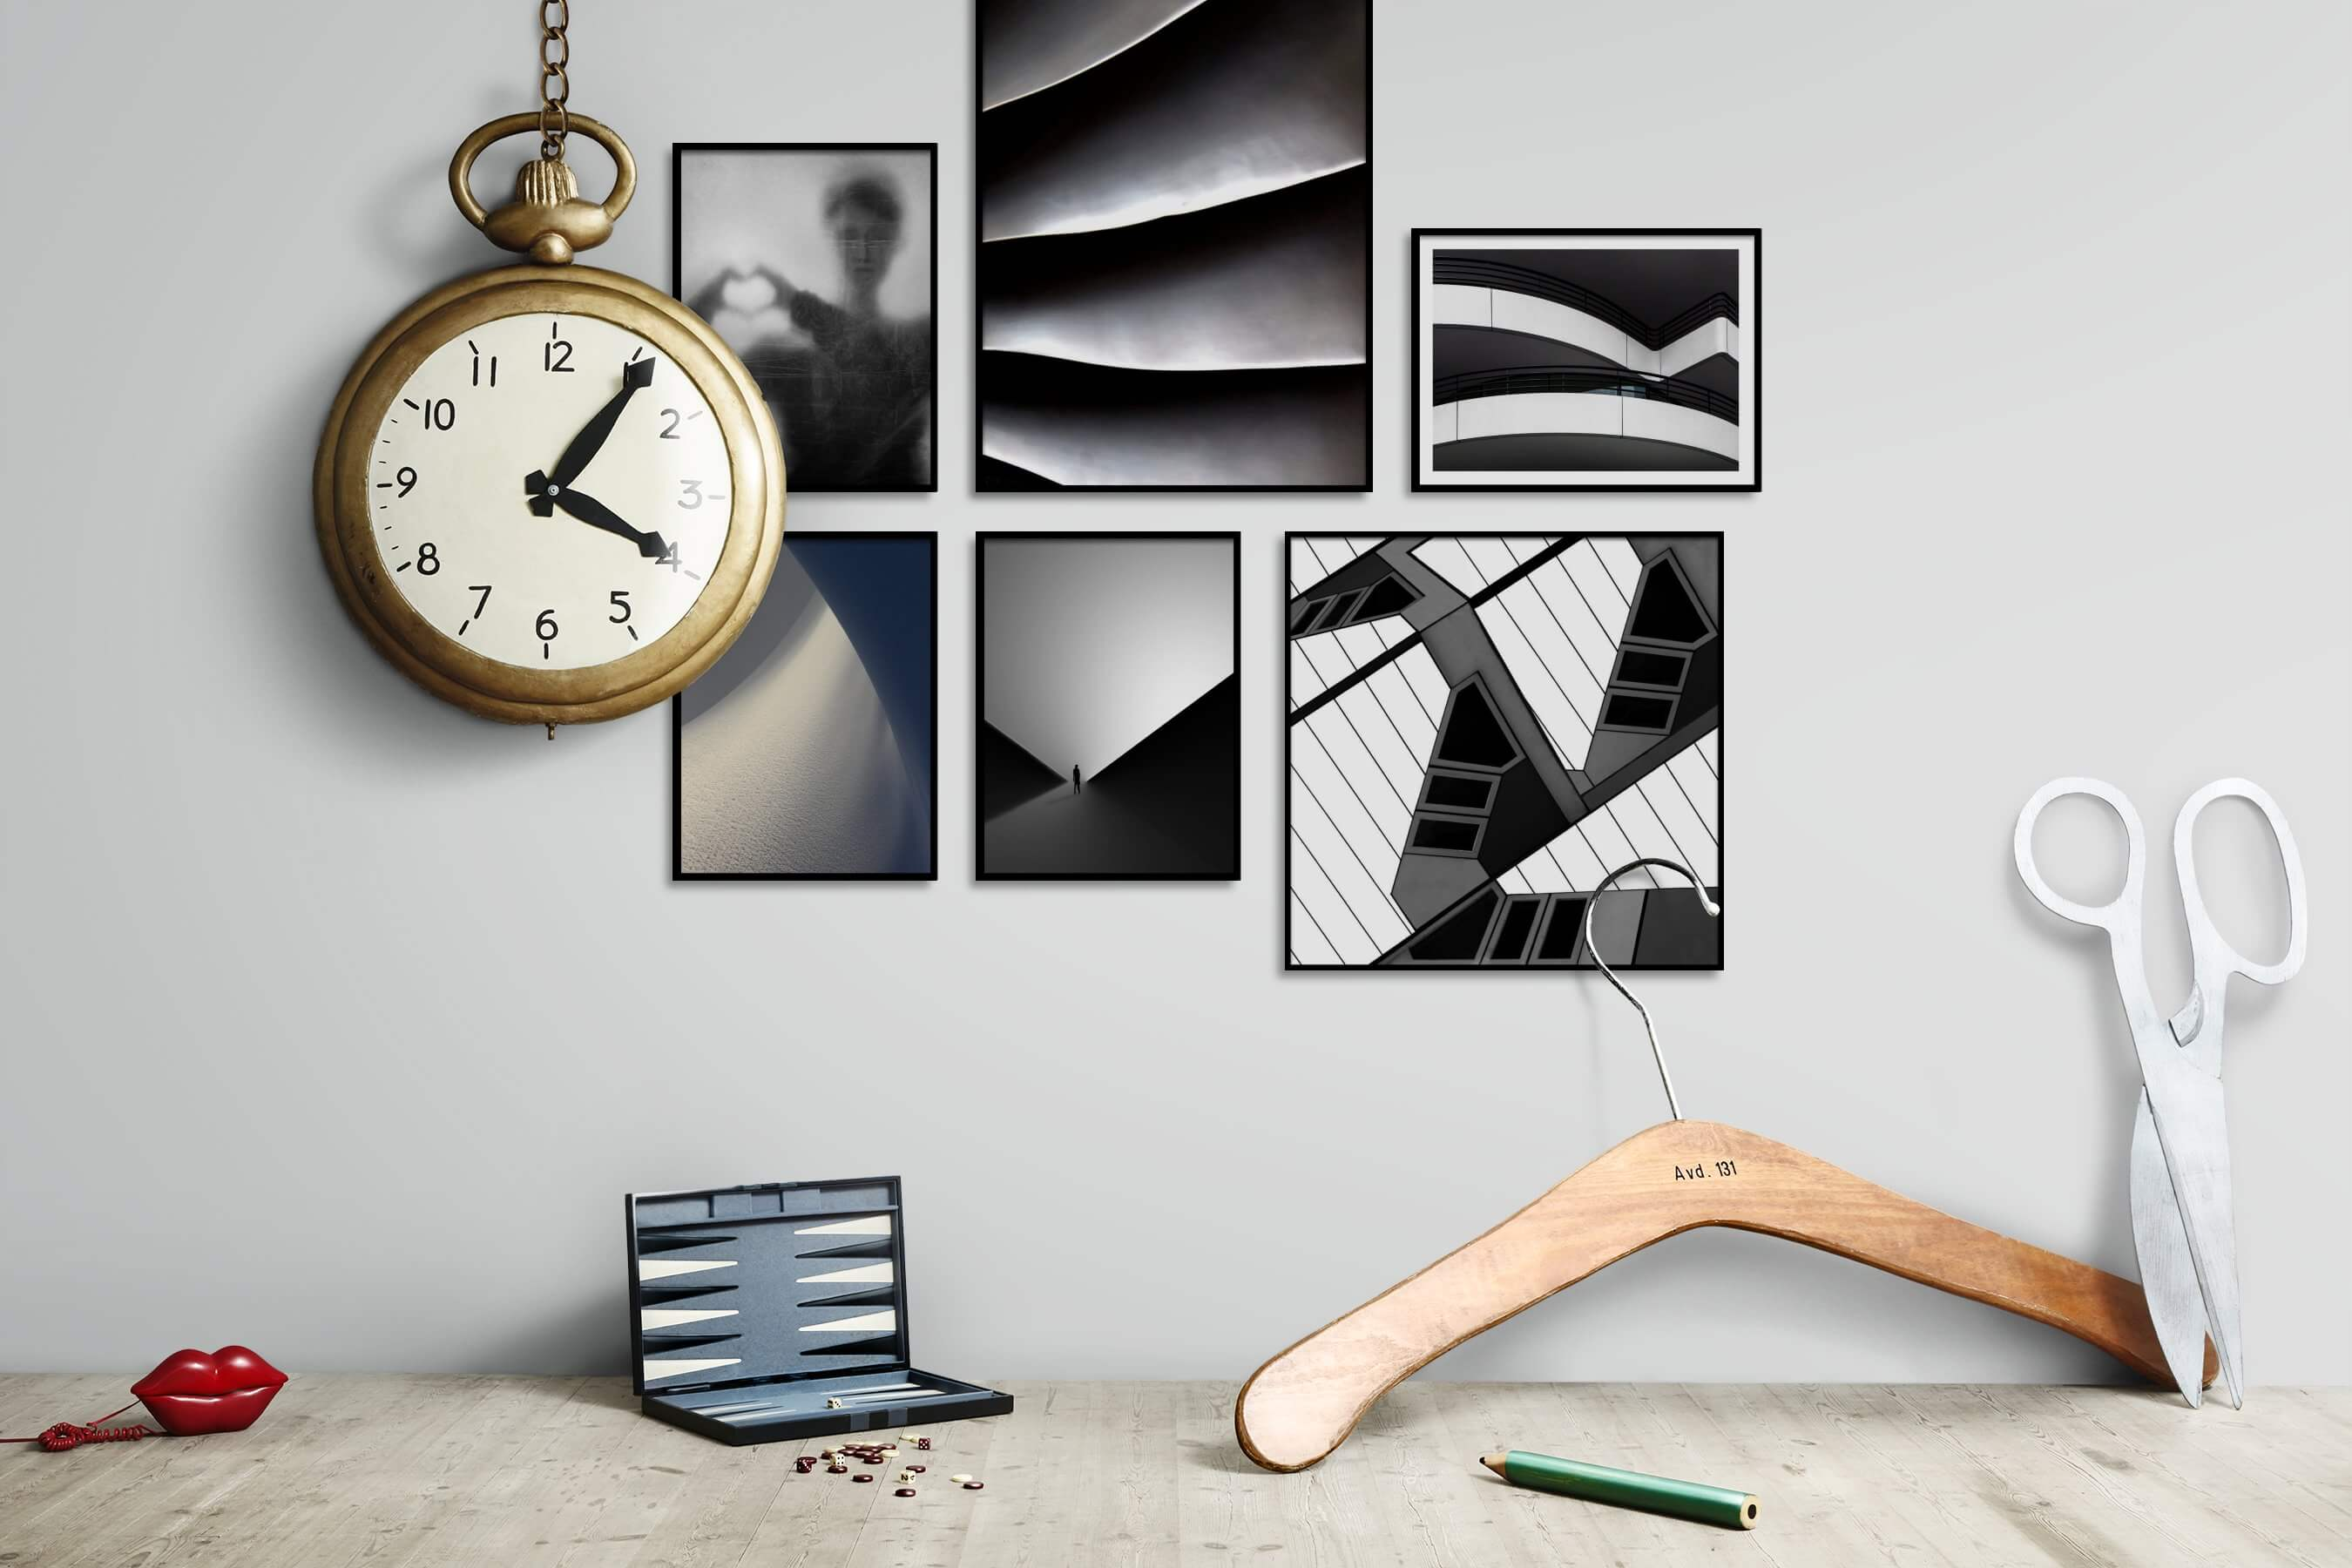 Gallery wall idea with six framed pictures arranged on a wall depicting Artsy, Black & White, For the Moderate, For the Minimalist, Nature, and City Life